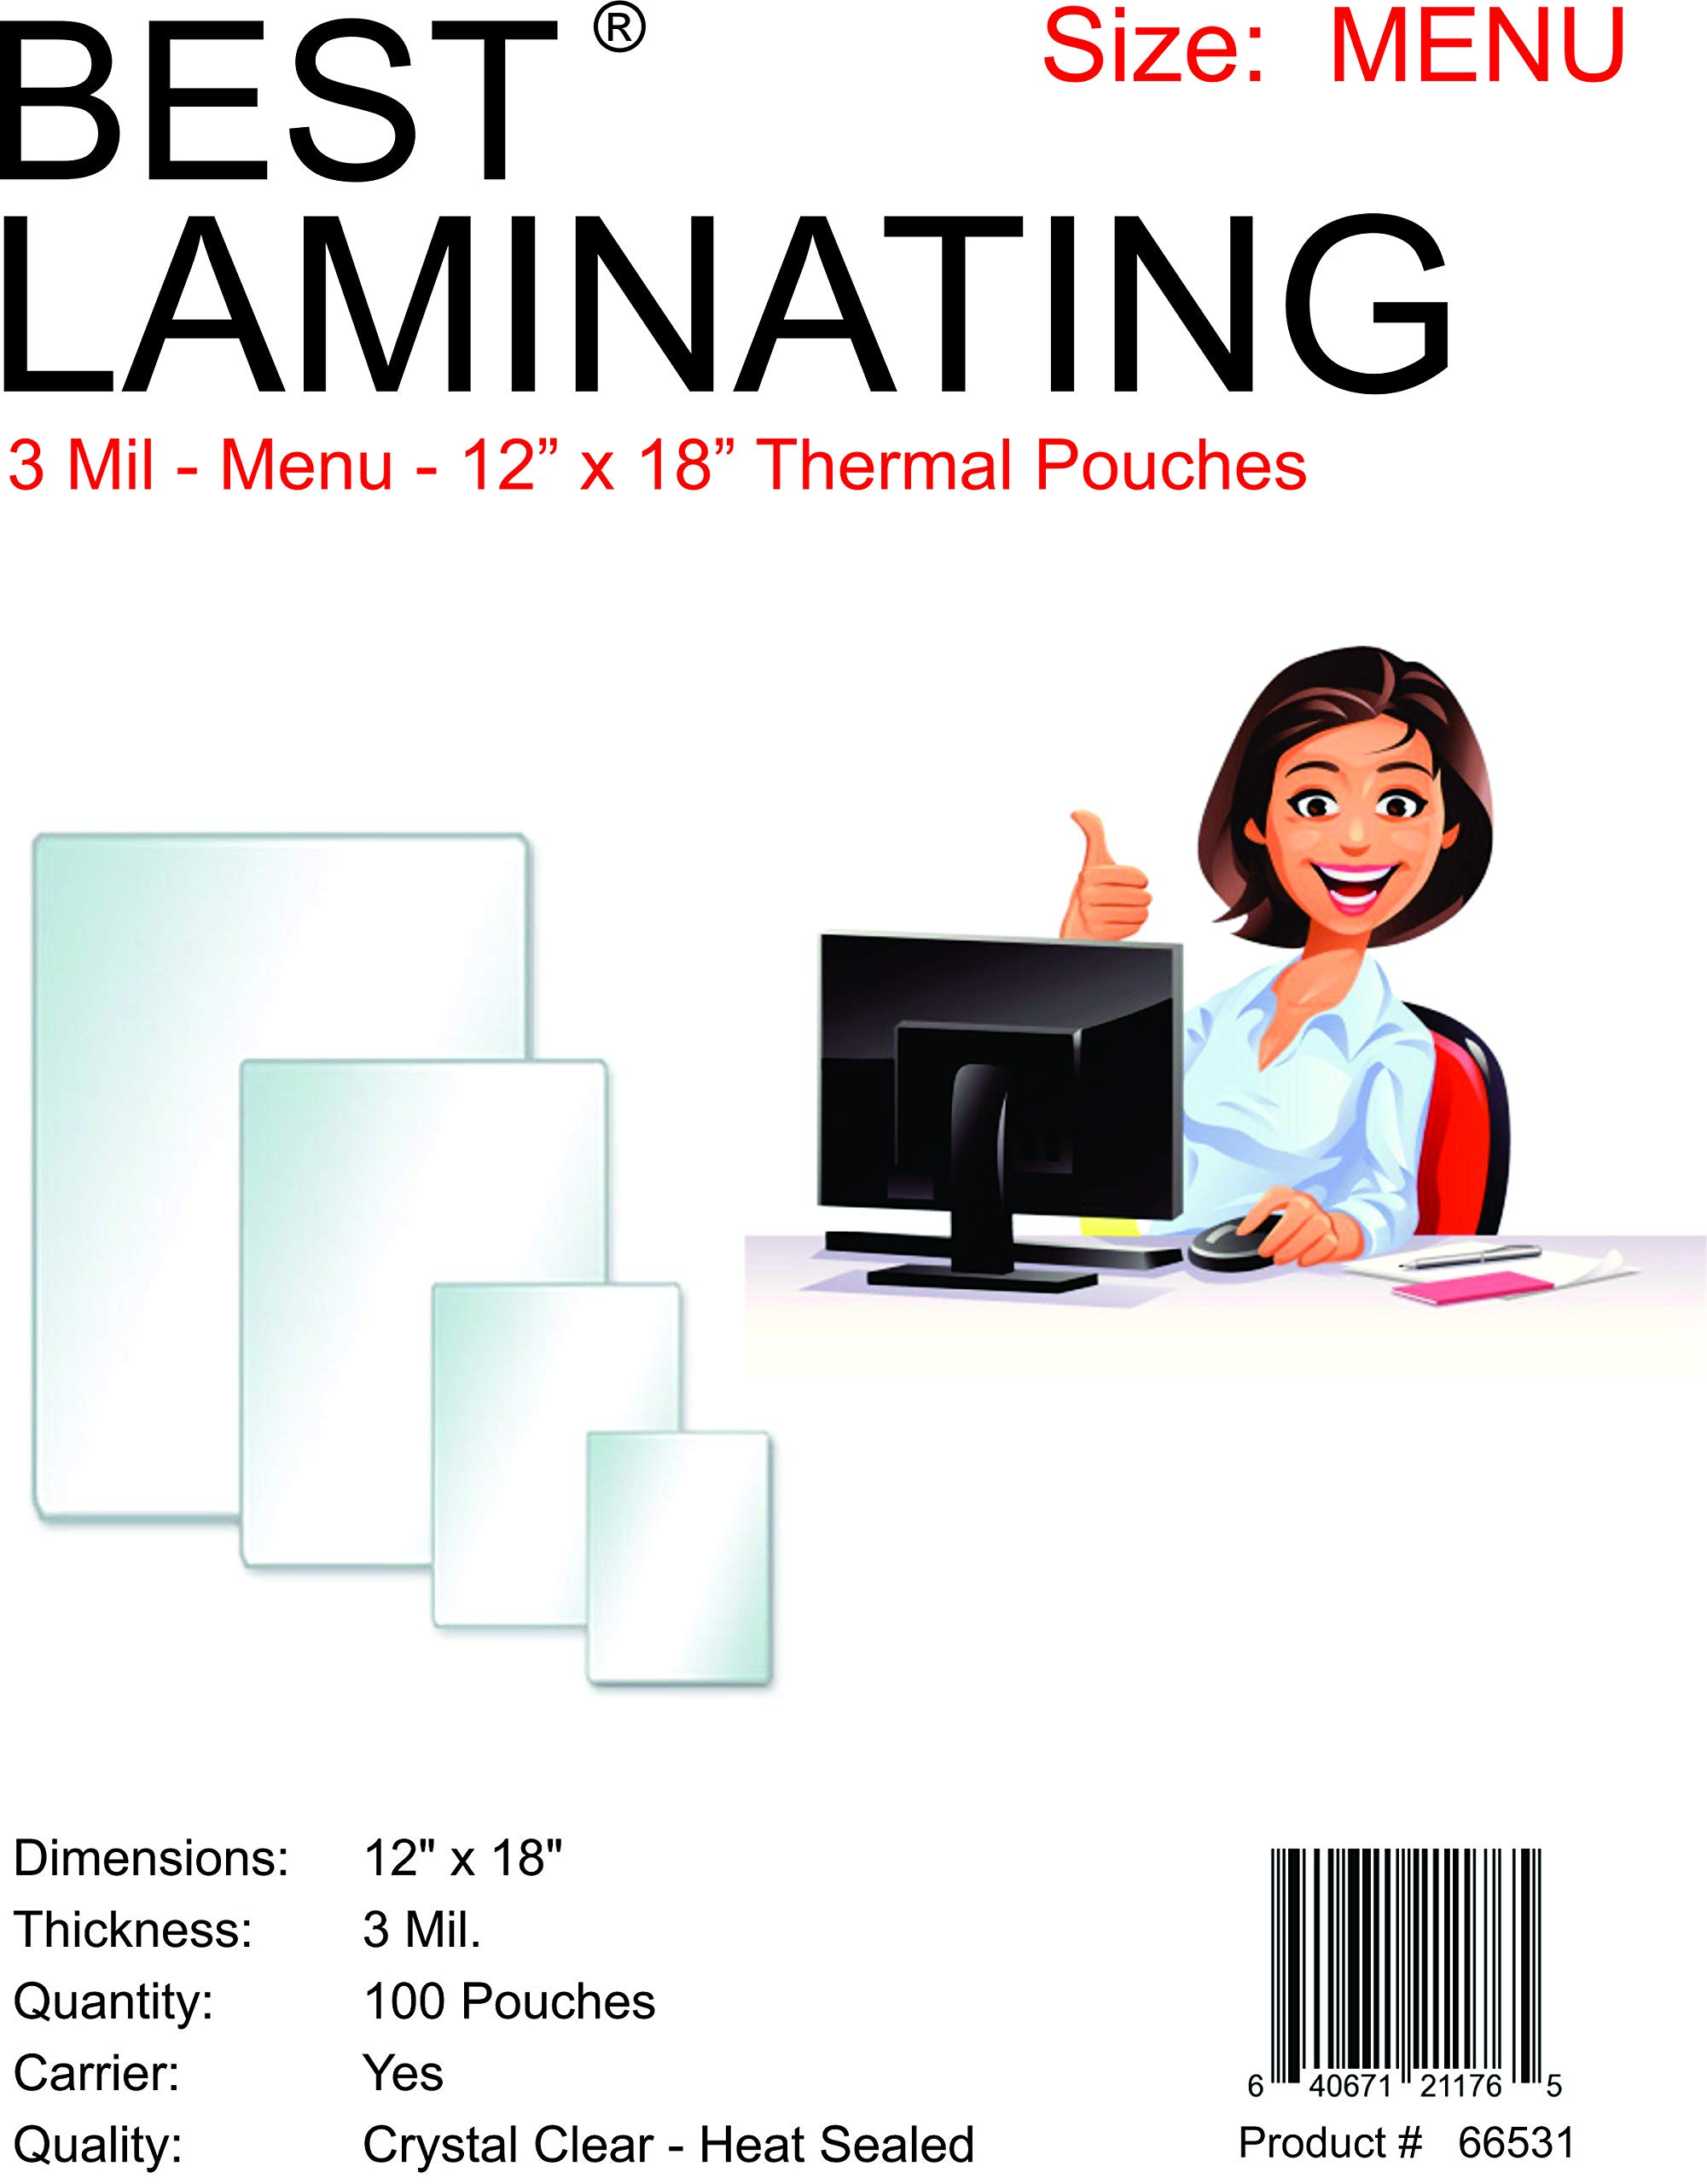 Best Laminating- 3 Mil Clear Menu Size Thermal Laminating Pouches - 12 X 18 - Qty 100, Model: 66531, Electronic Store